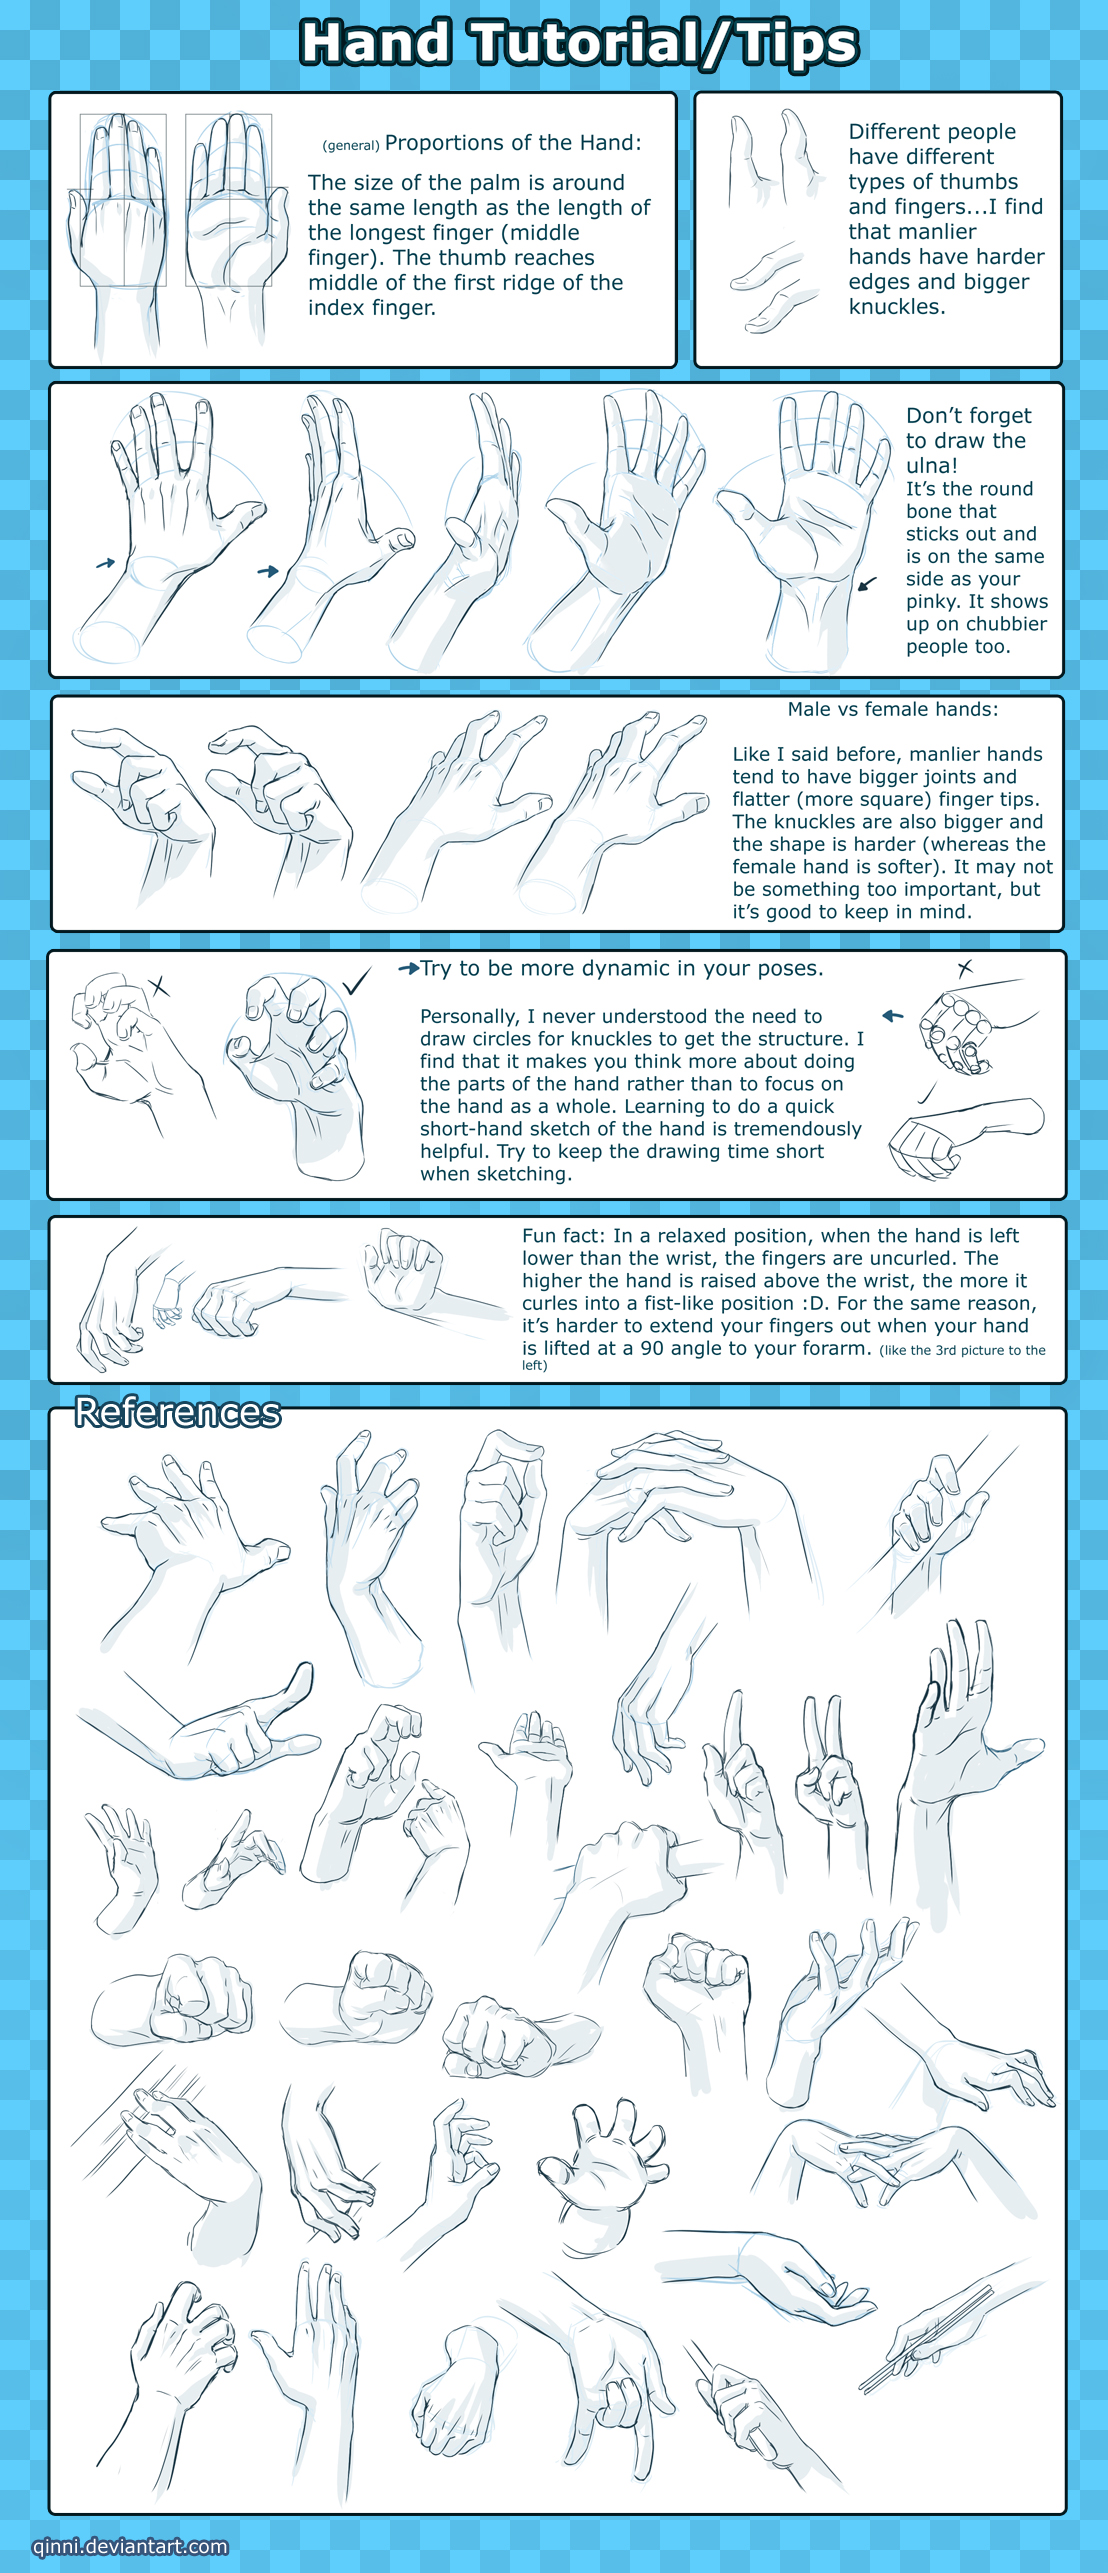 hand tutorial tips reference by qinni on hand tutorial tips reference by qinni